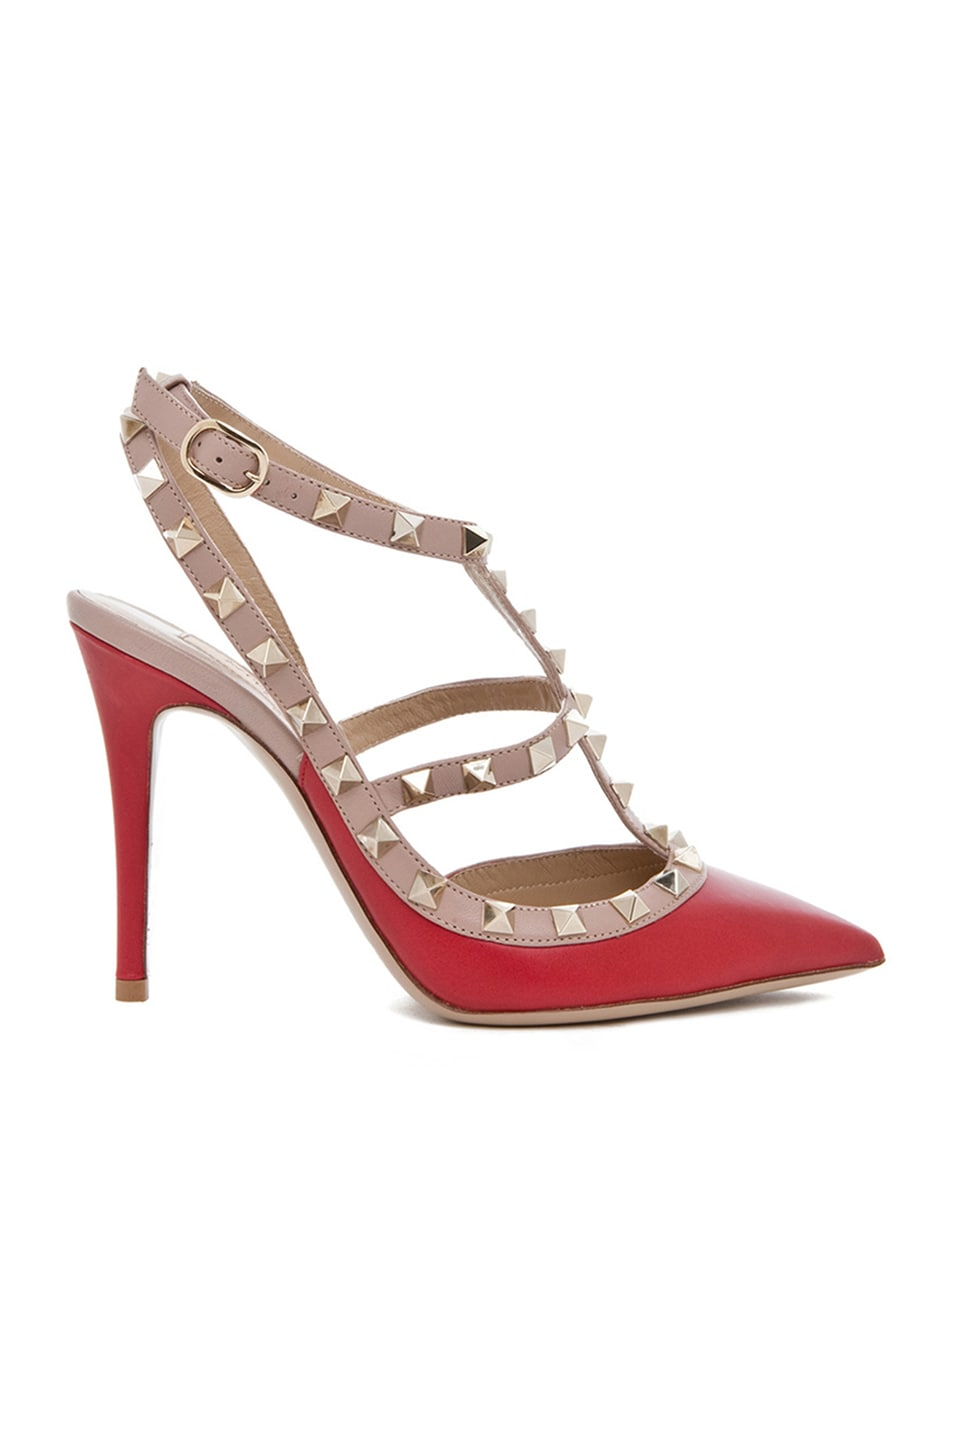 Image 1 of Valentino Rockstud Leather Slingbacks T.100 in Red